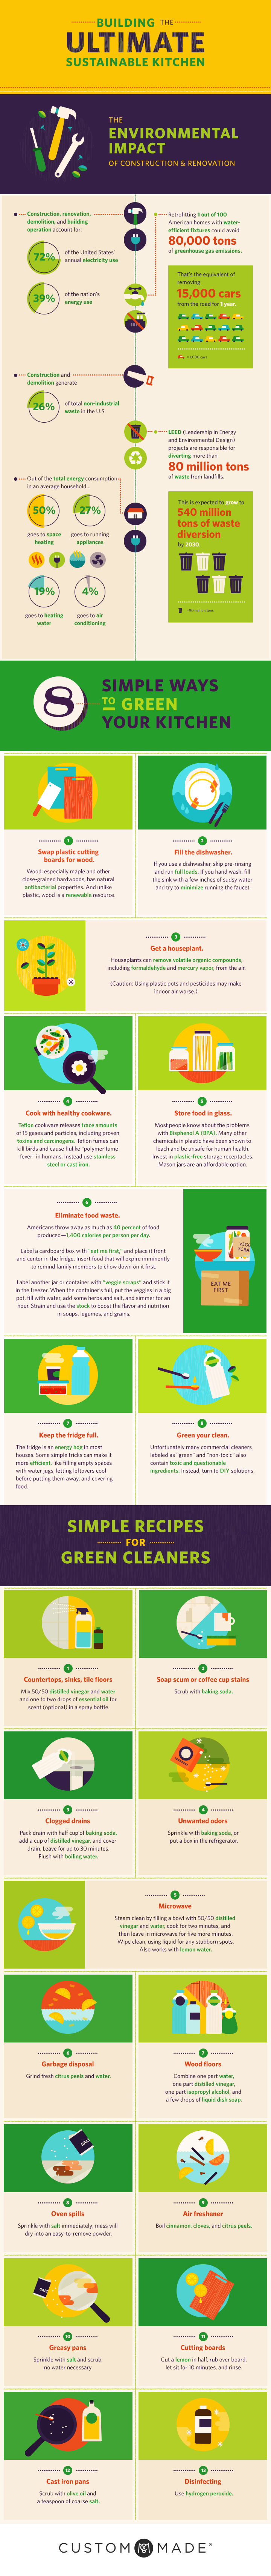 Build the Ultimate Sustainable Kitchen Infographic